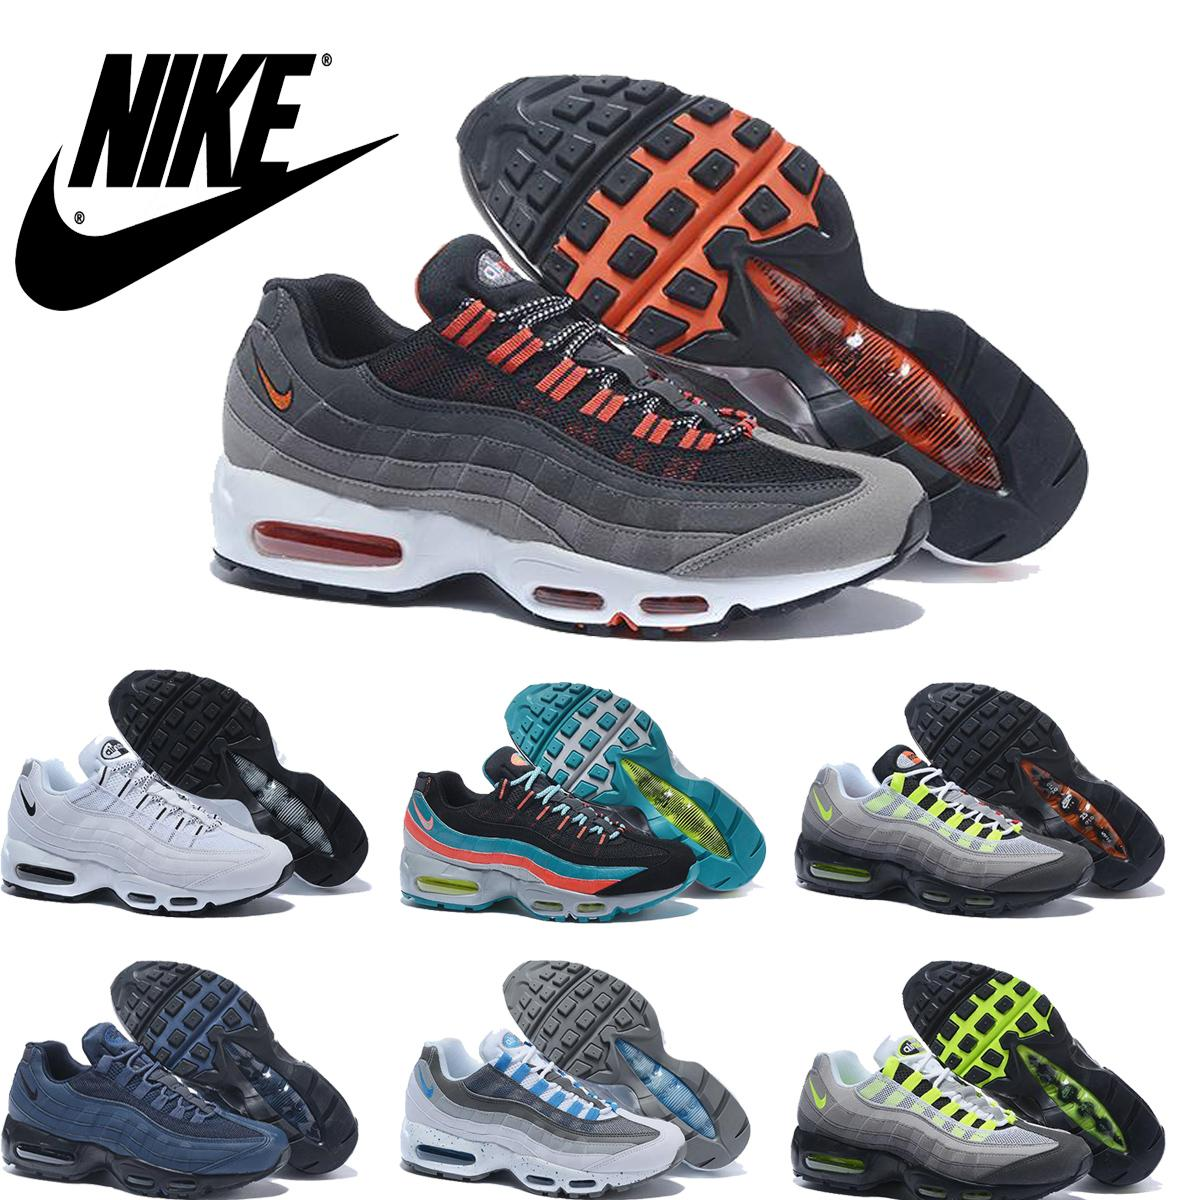 2016 Nike Air Max 95 OG Greedy Retro Mens Running Shoes,Wholesale Original Air Max95 Maxes Airmax 95 OG Neon Green Black Men Sneakers Online with ...